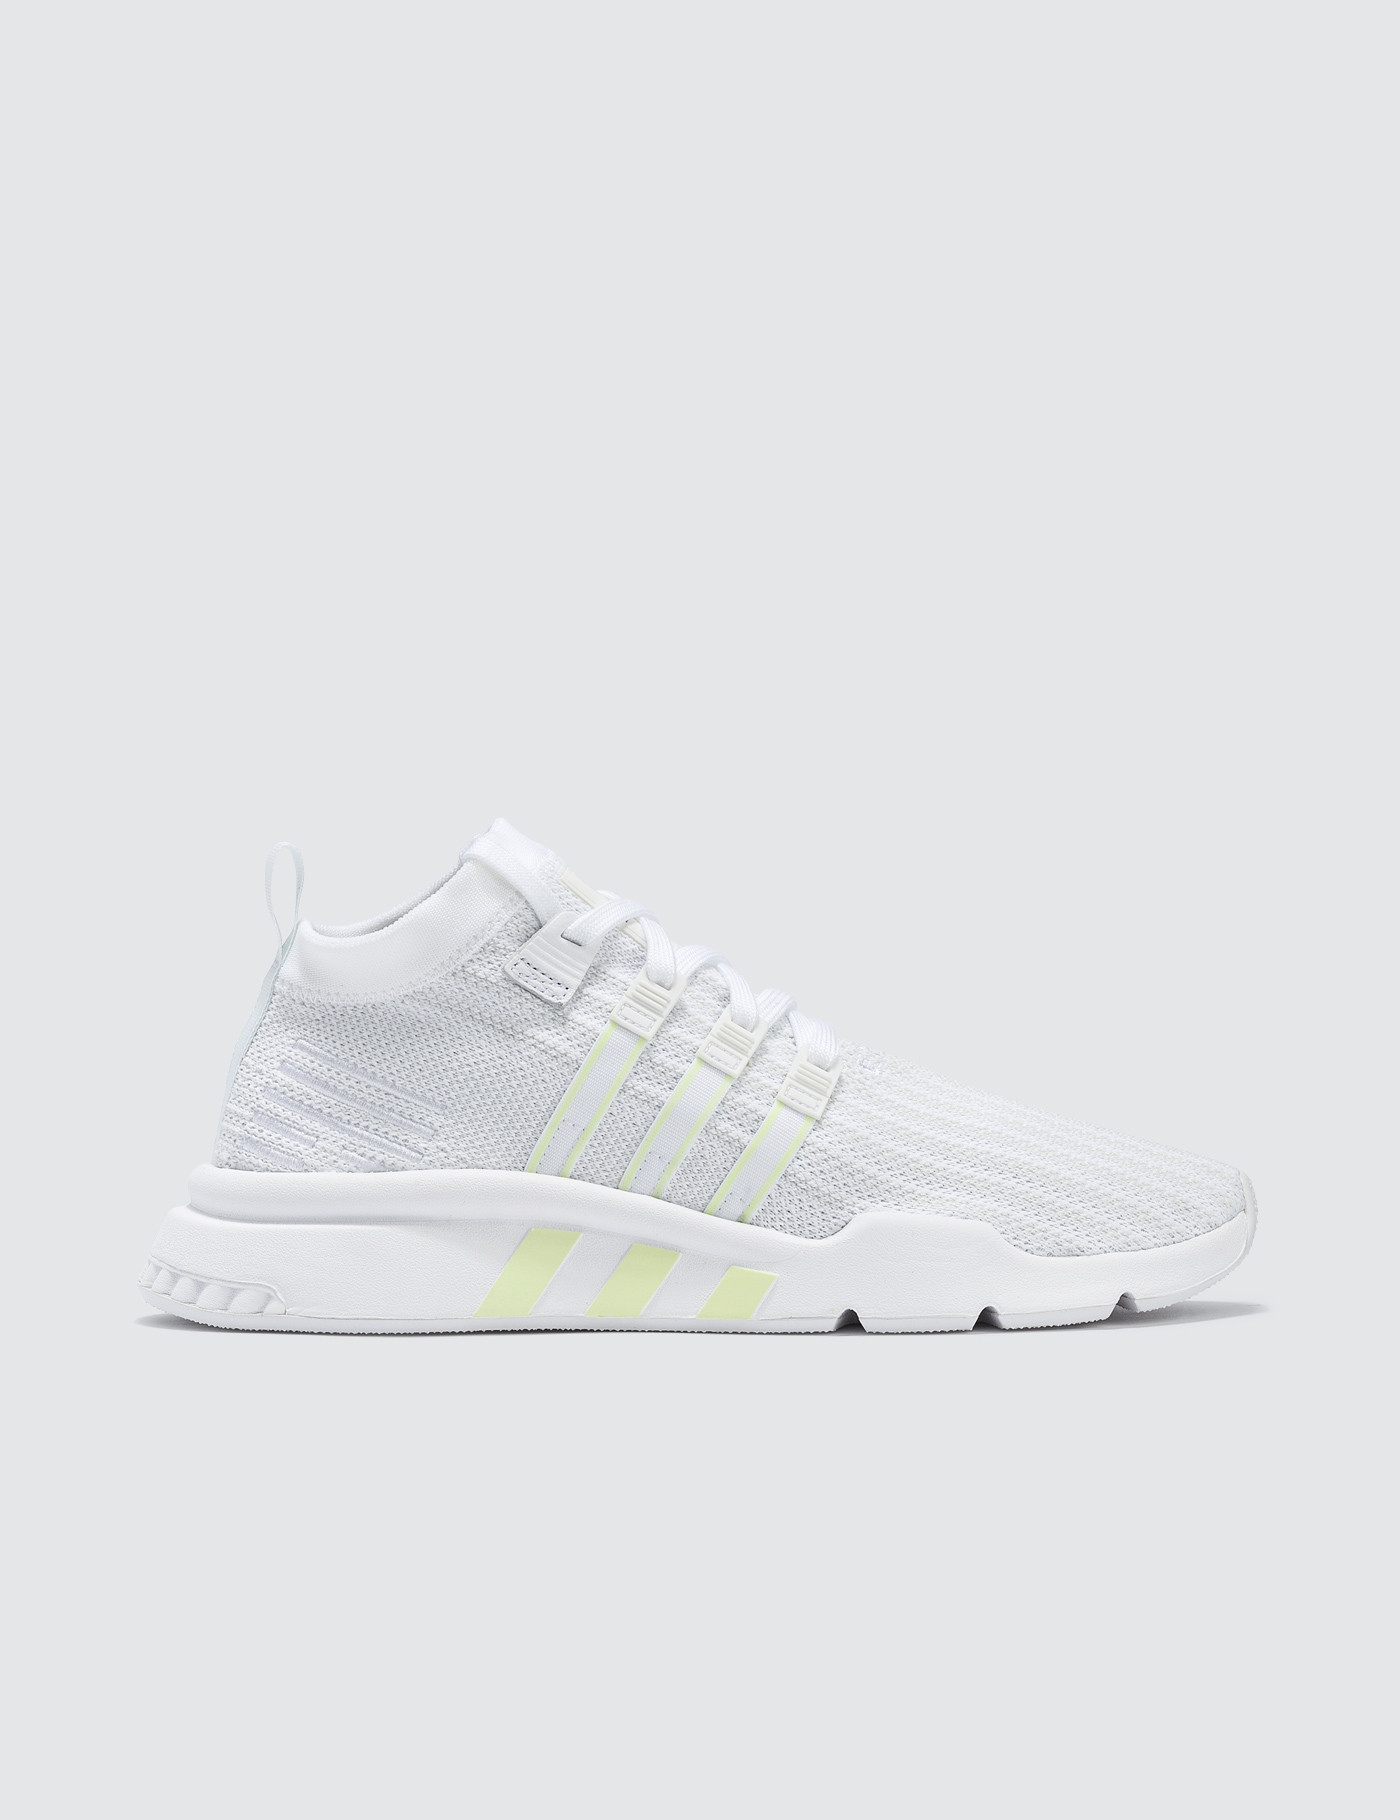 new arrival 42038 0b305 EQT Support Mid Adv Primeknit, Adidas Originals